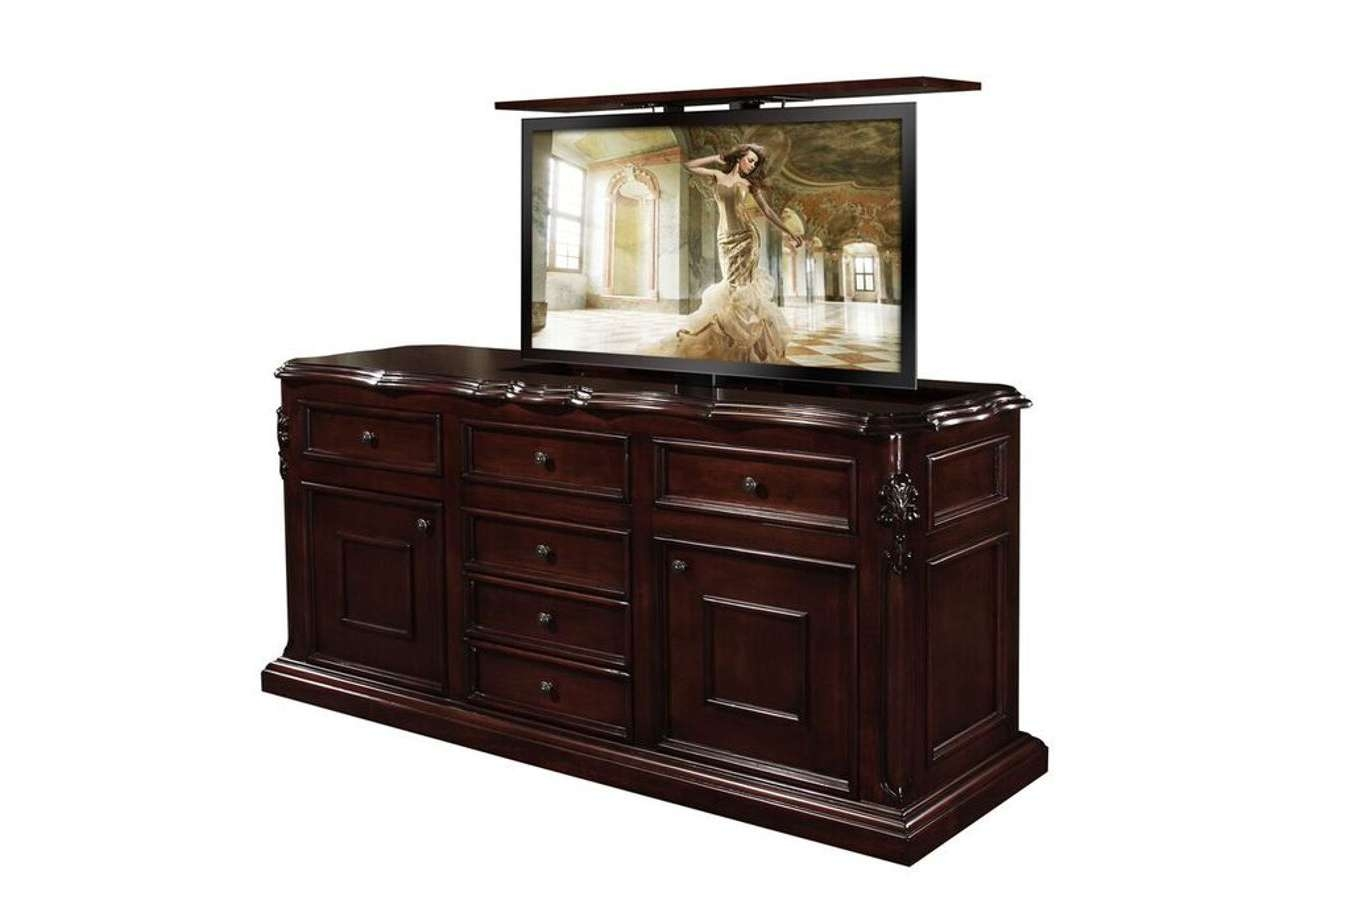 Cabinet : Motorized Pop Up Tv Lift Cabinets For Every Room Inside Pop Up Tv Stands (View 13 of 20)